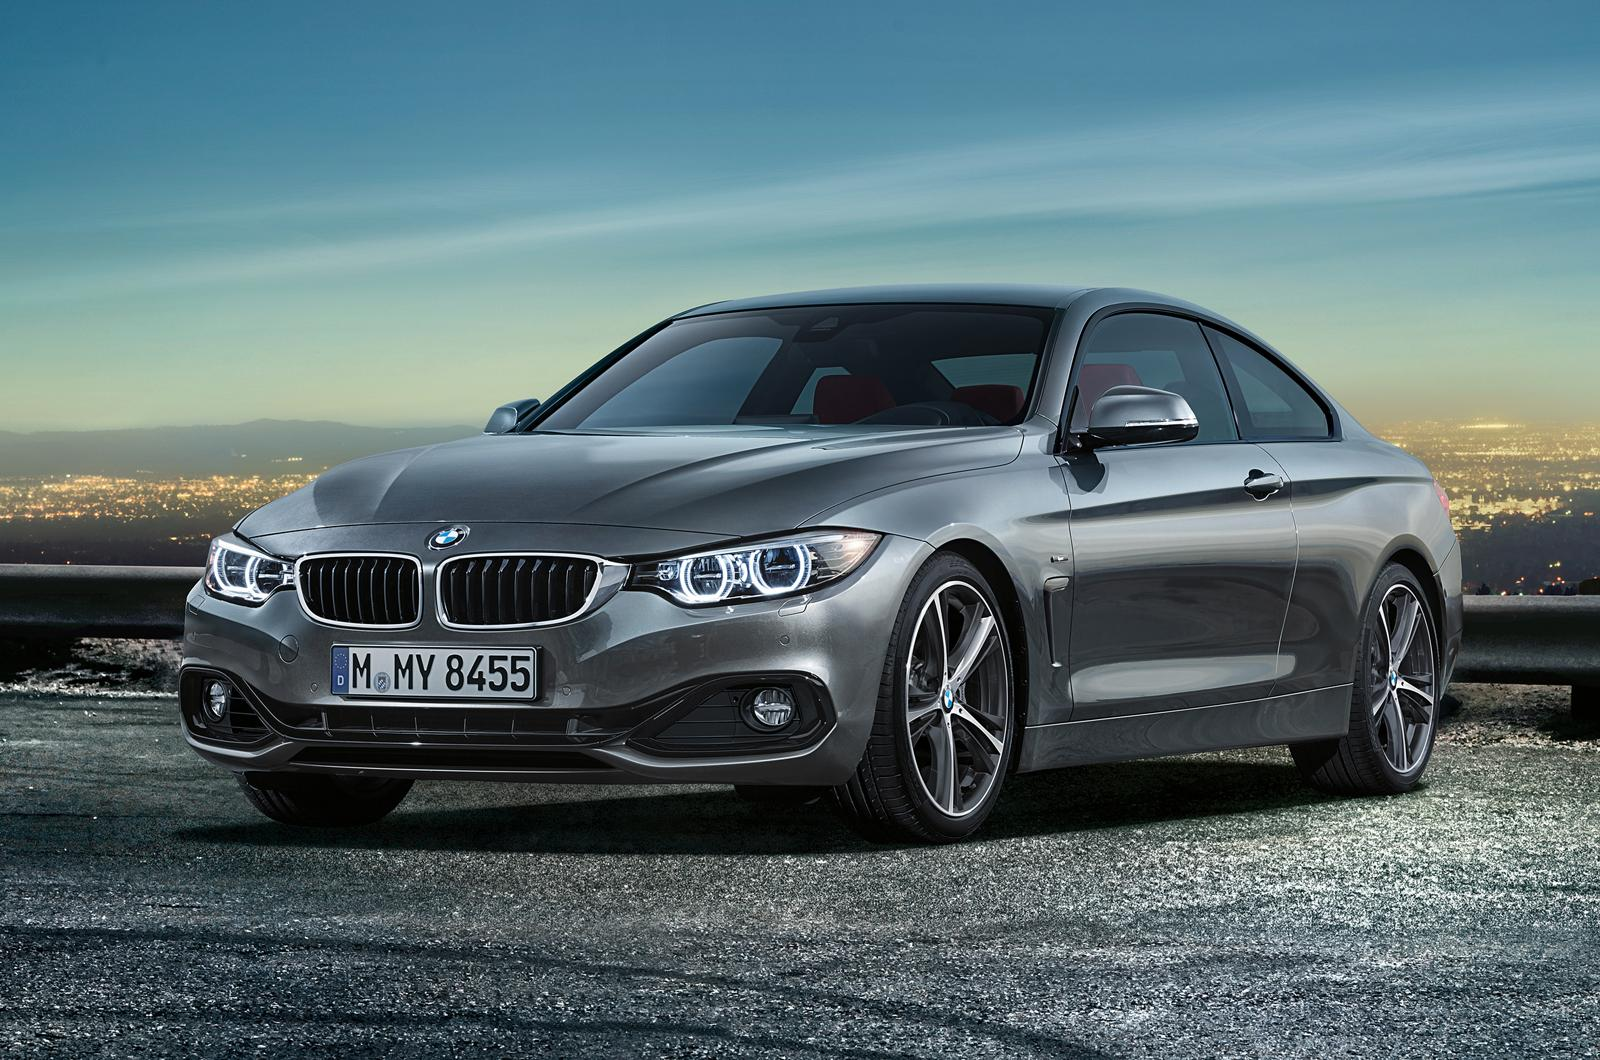 BMW 4-Series Revealed Ahead of Frankfurt - GTspirit